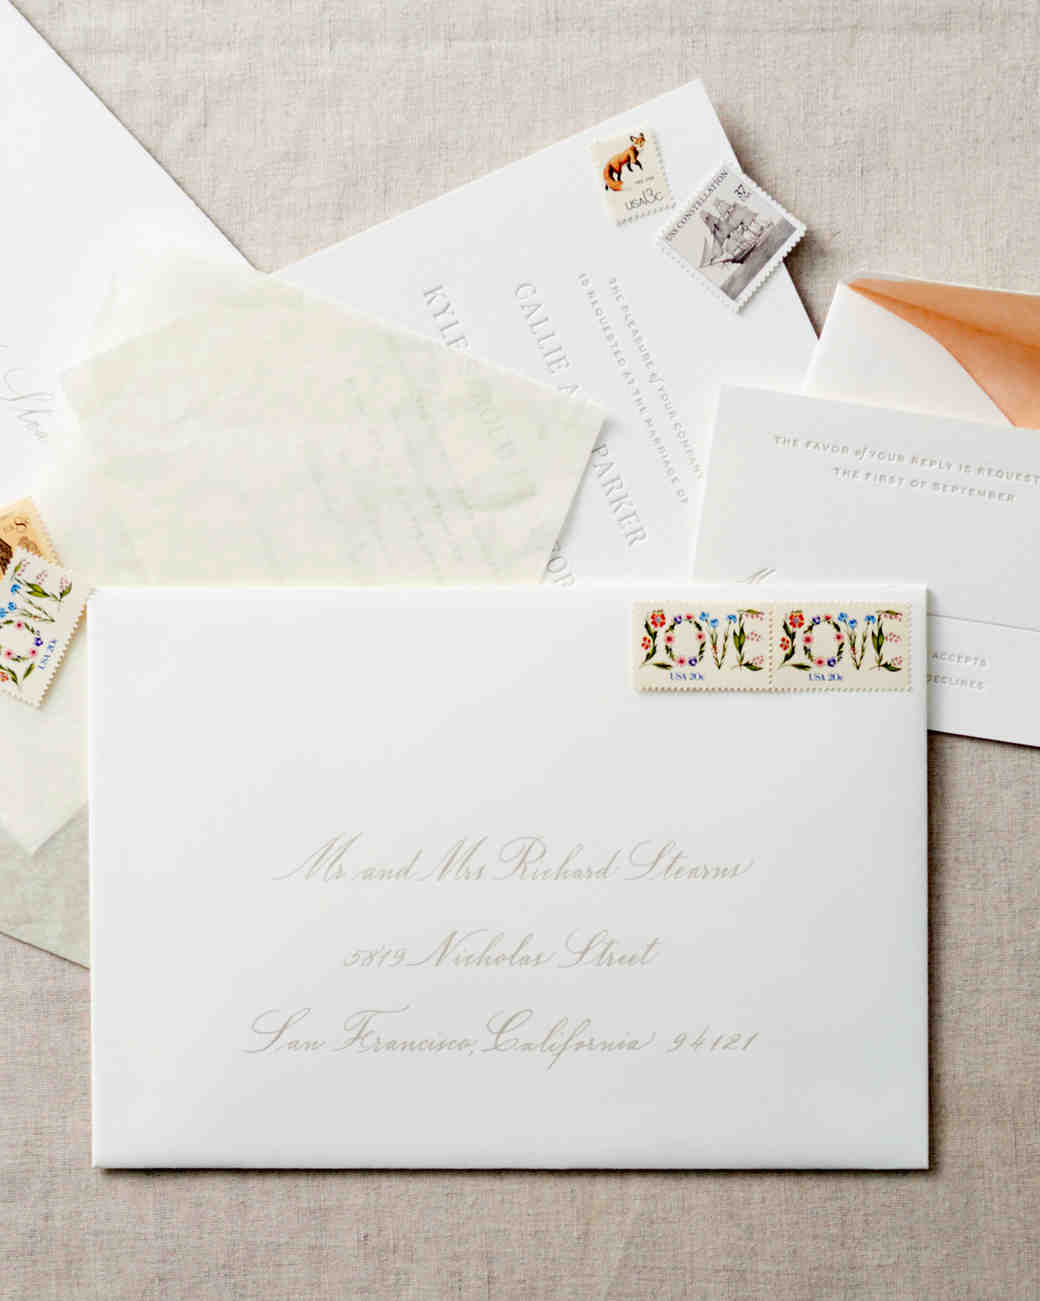 10 things you should know before addressing assembling and mailing guests names though etiquette for addressing and assembling wedding invitations stopboris Gallery